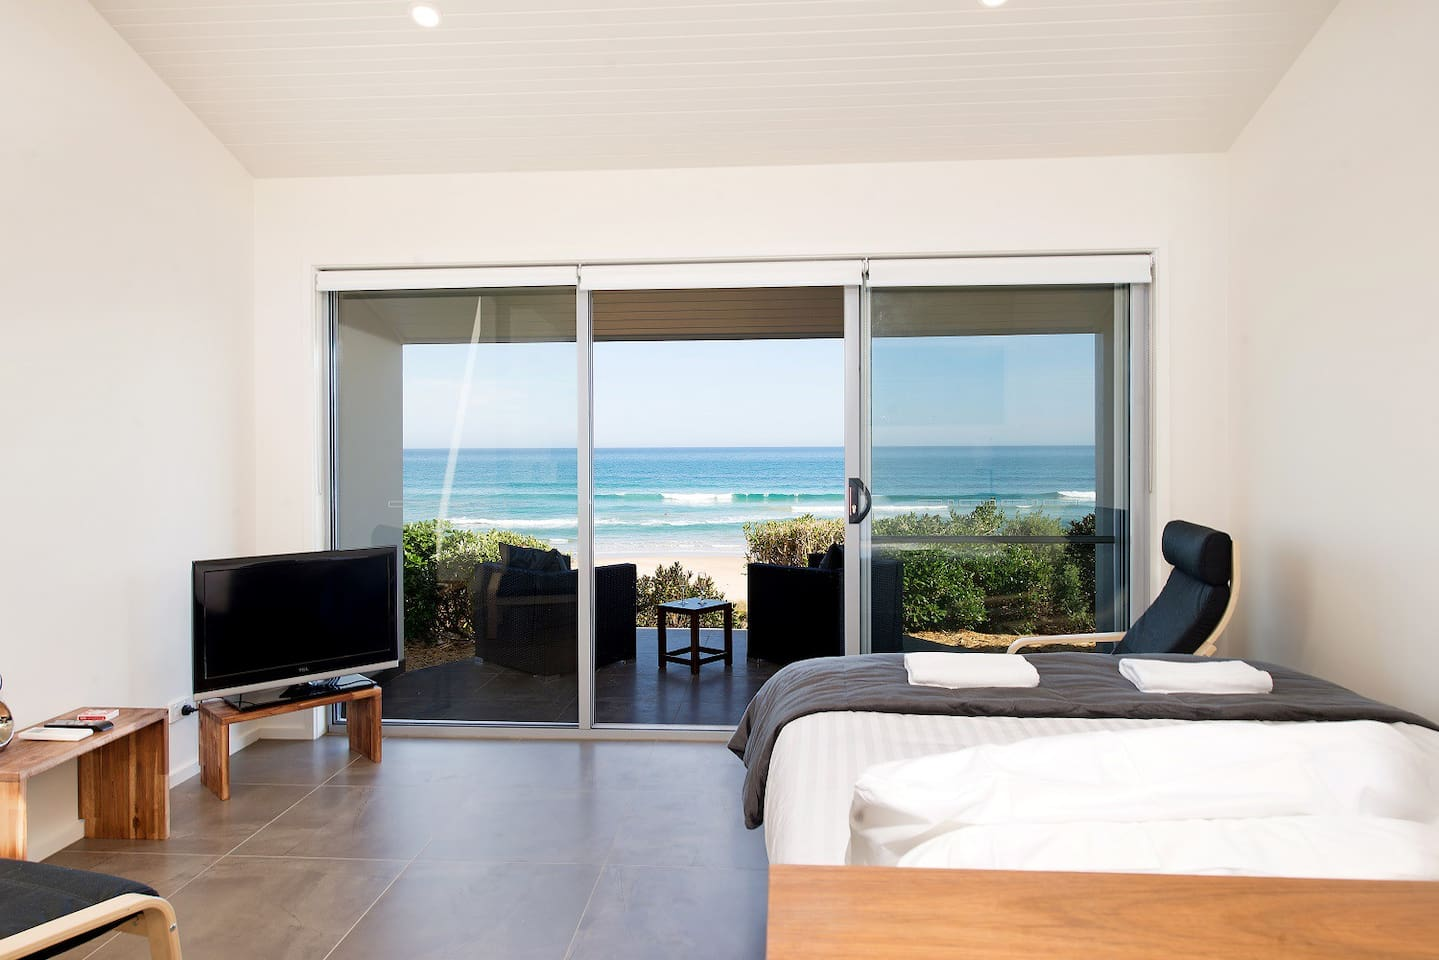 View of beach from bed, with two armchairs inside and patio setting